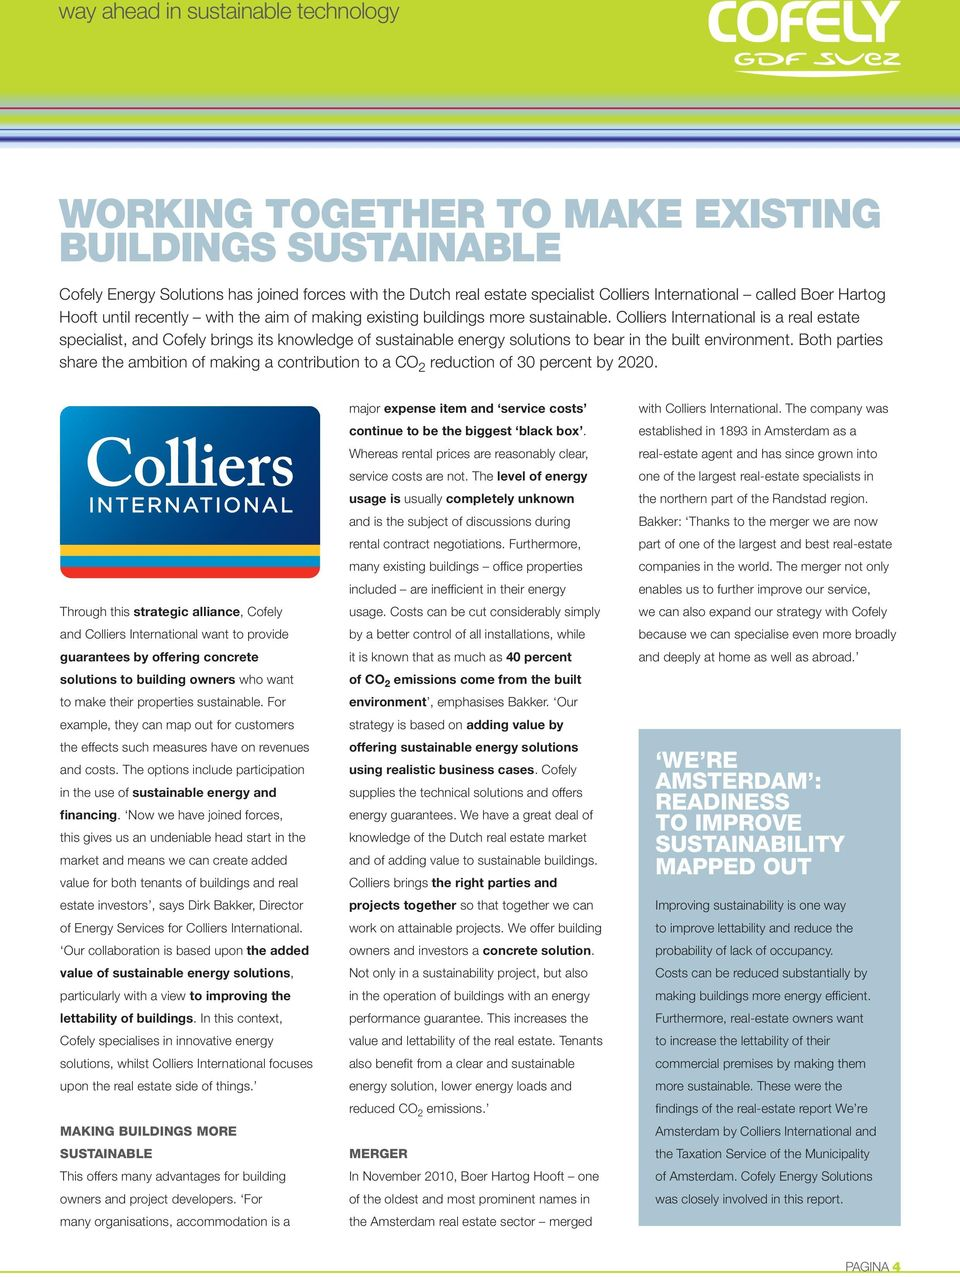 Colliers International is a real estate specialist, and Cofely brings its knowledge of sustainable energy solutions to bear in the built environment.